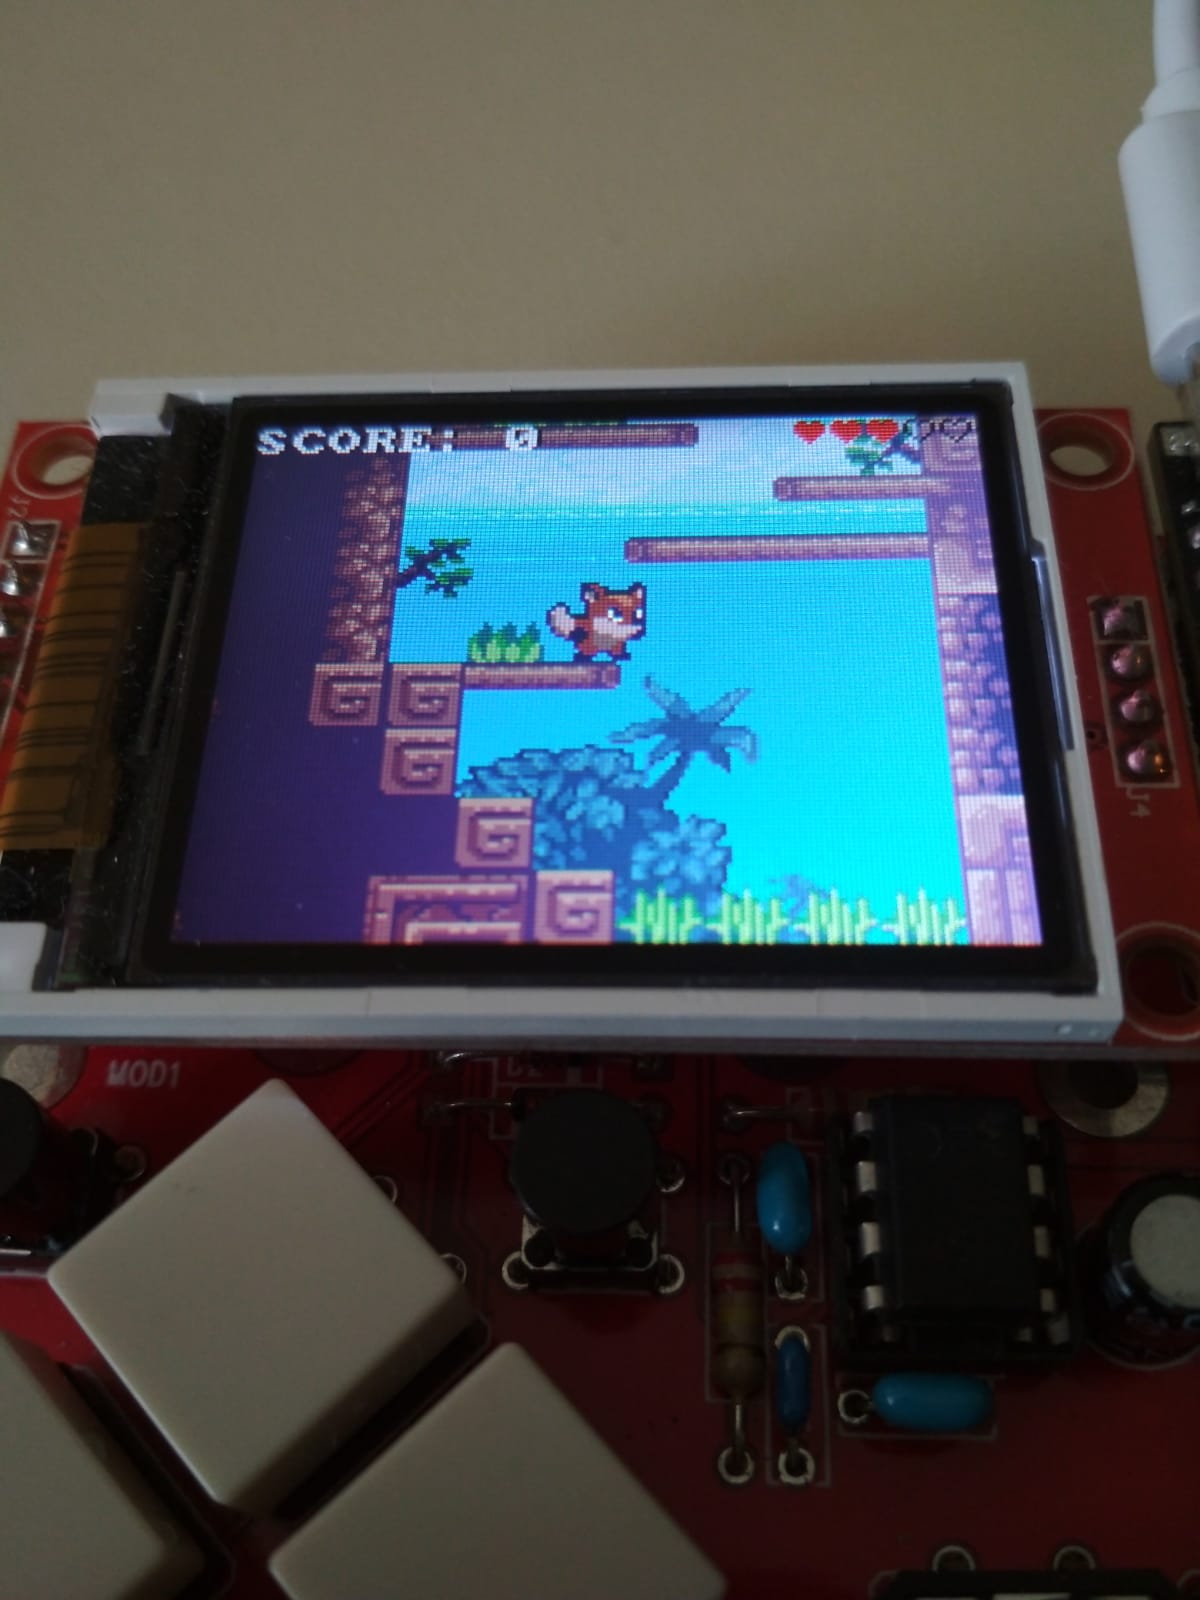 Let's build a handheld 40-fps platform game with a Cortex